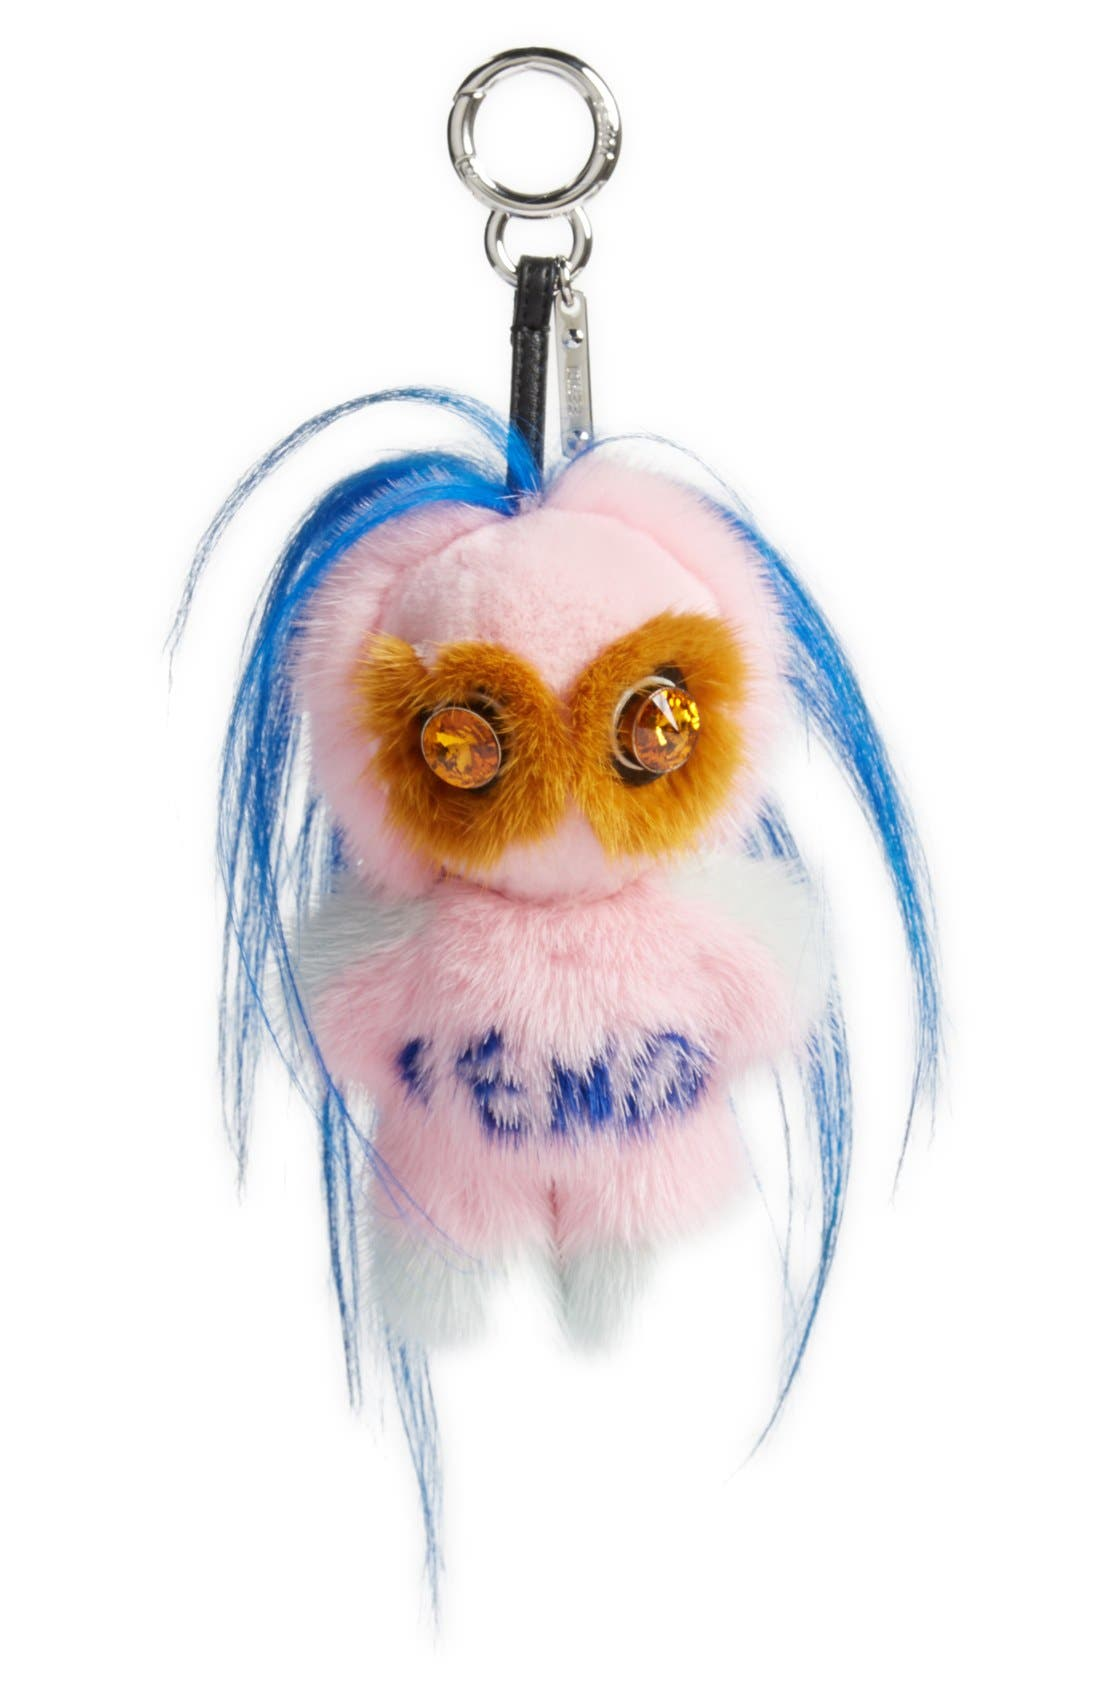 Fendi Fendirumi Piro-Chan Genuine Fur Bag Charm